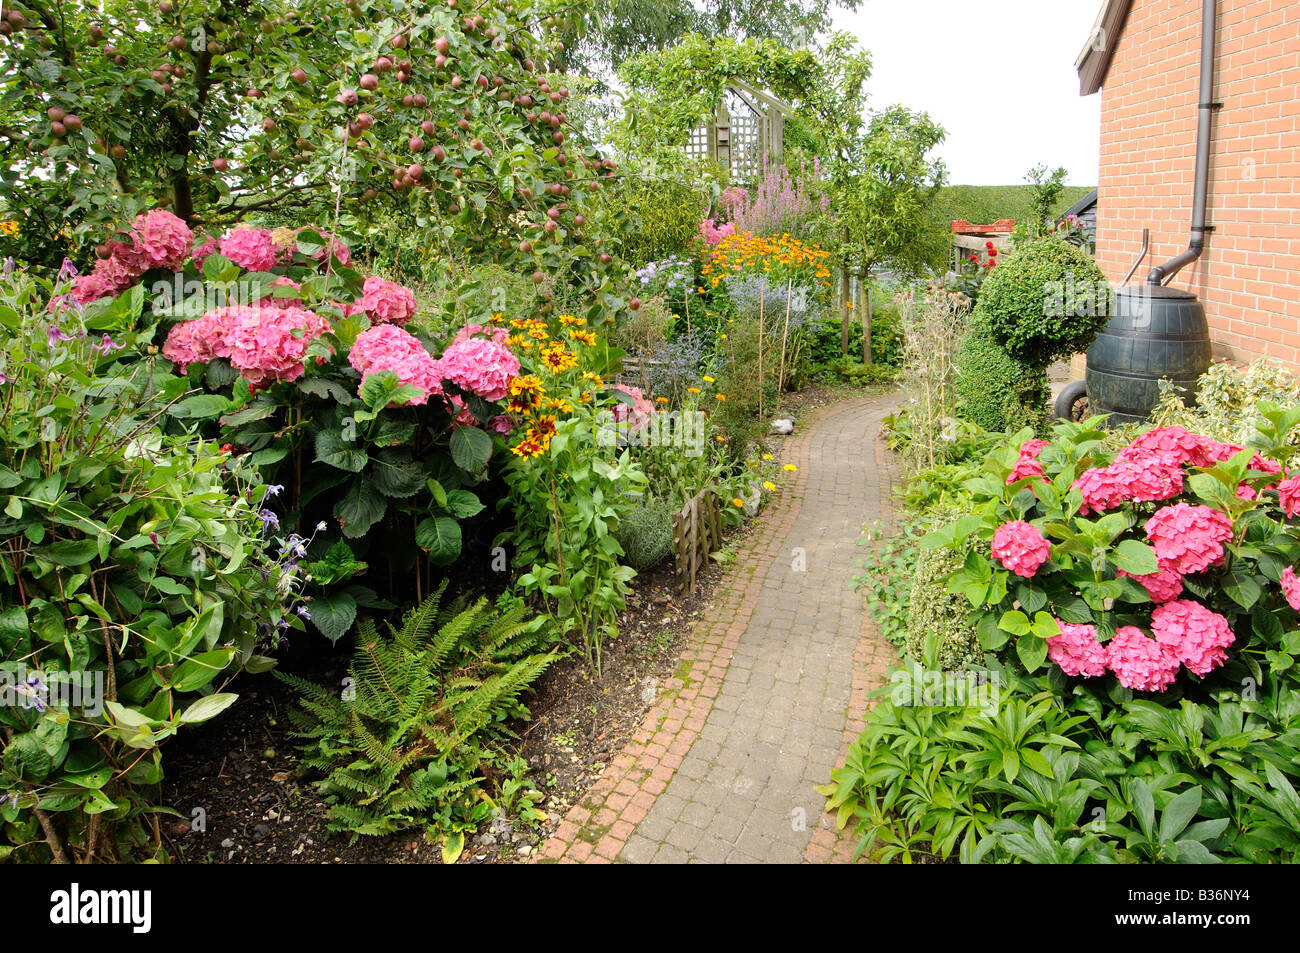 Rustic garden path in summer with herbaceous flowers and shrubs stock photo royalty free image - Rustic flower gardens ...